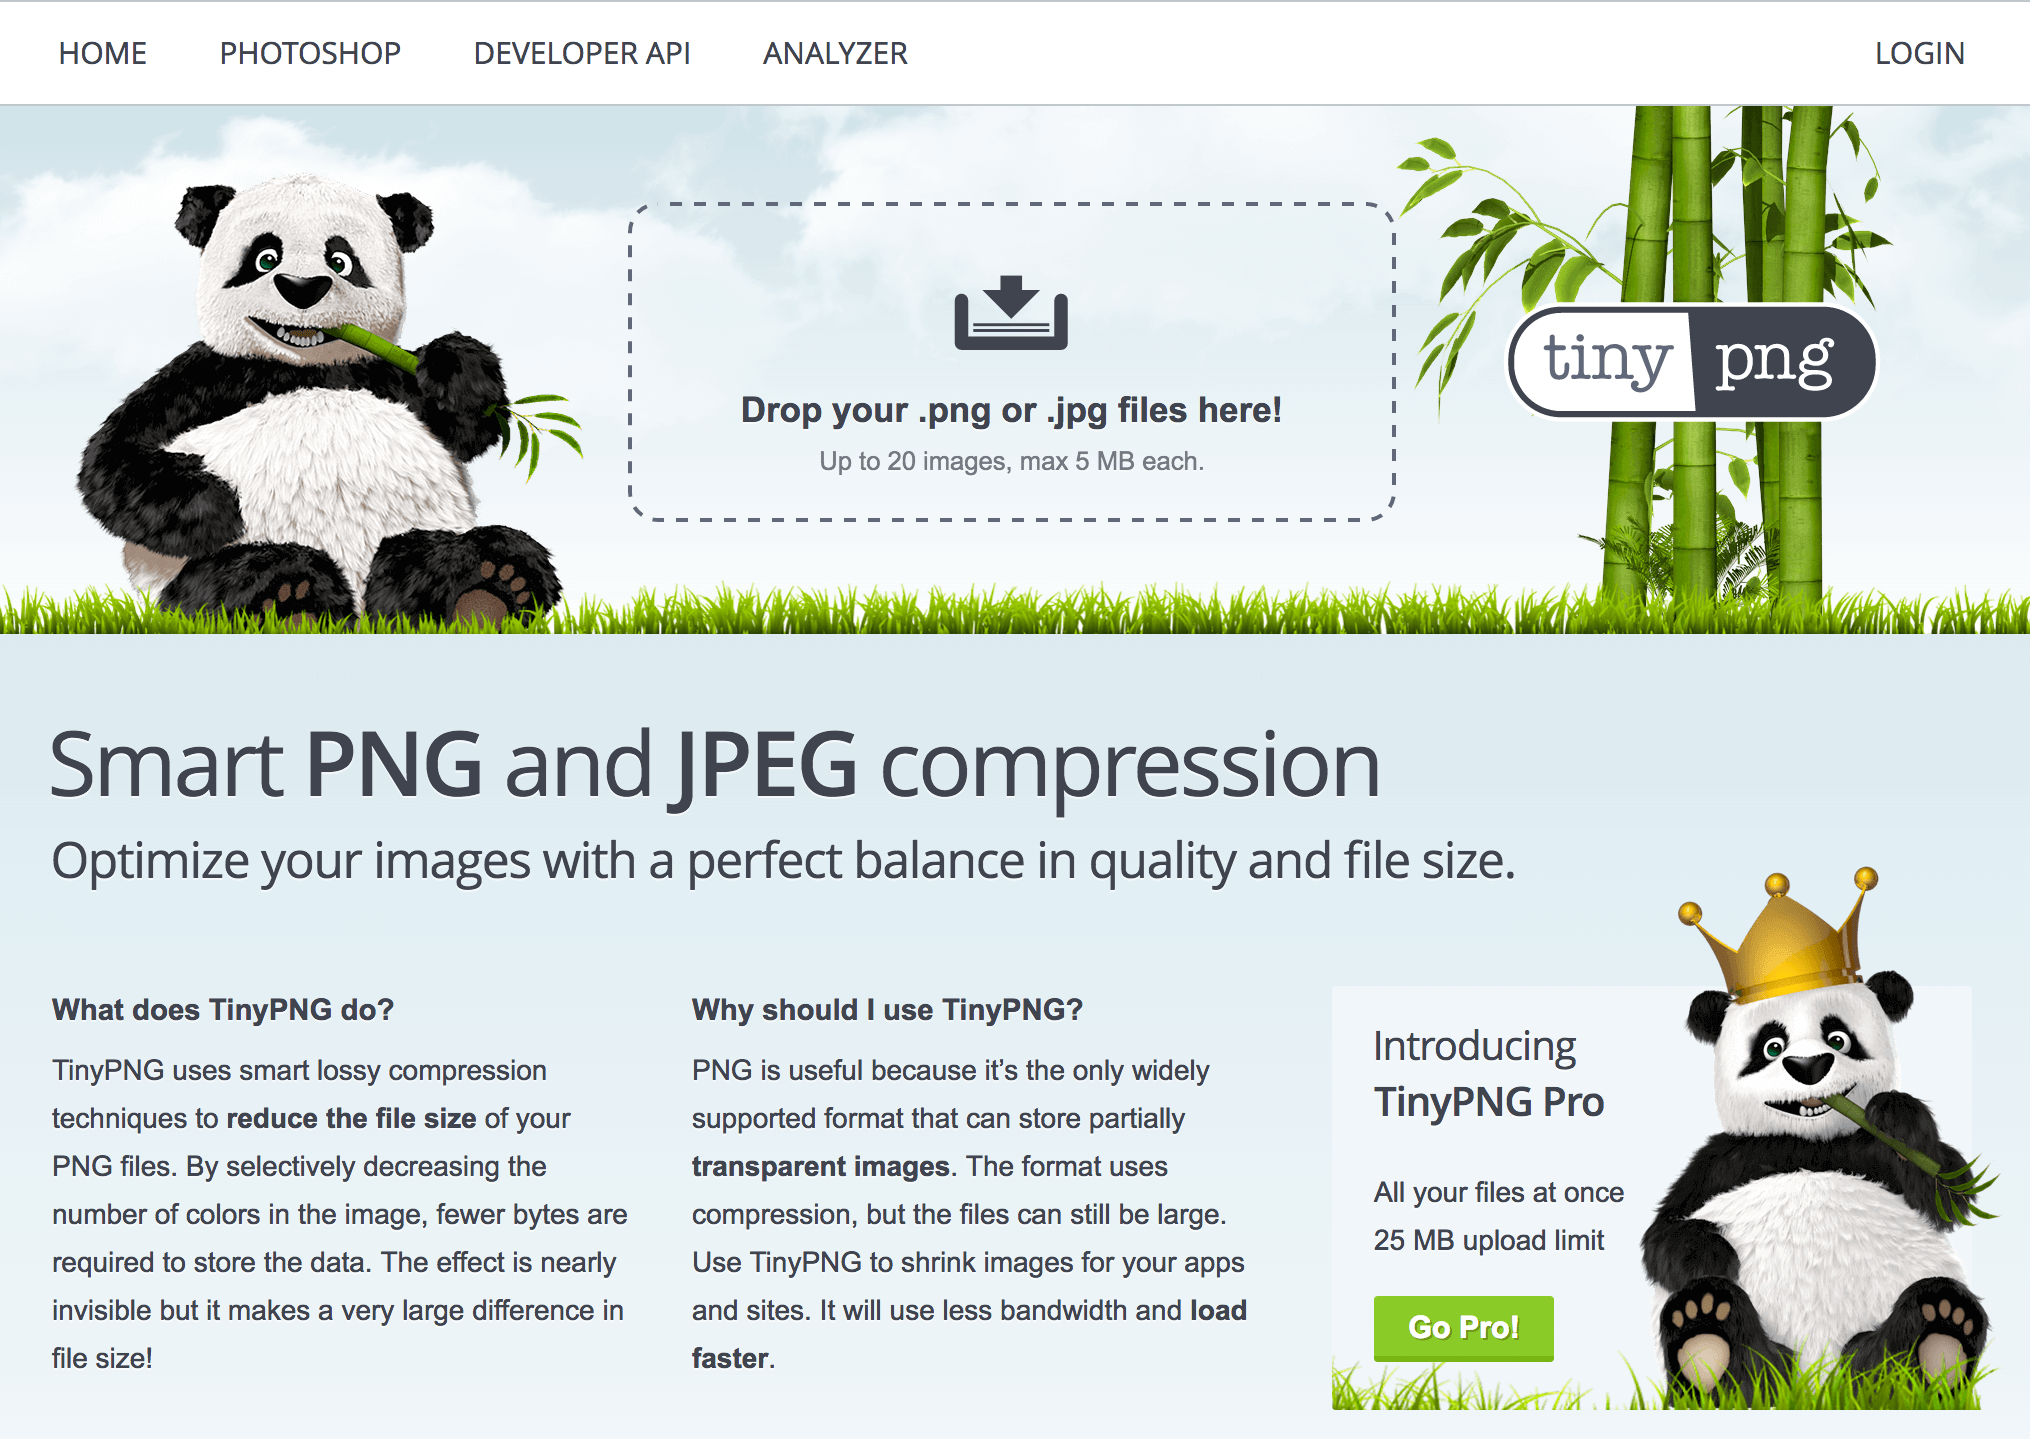 The TinyPNG home page.